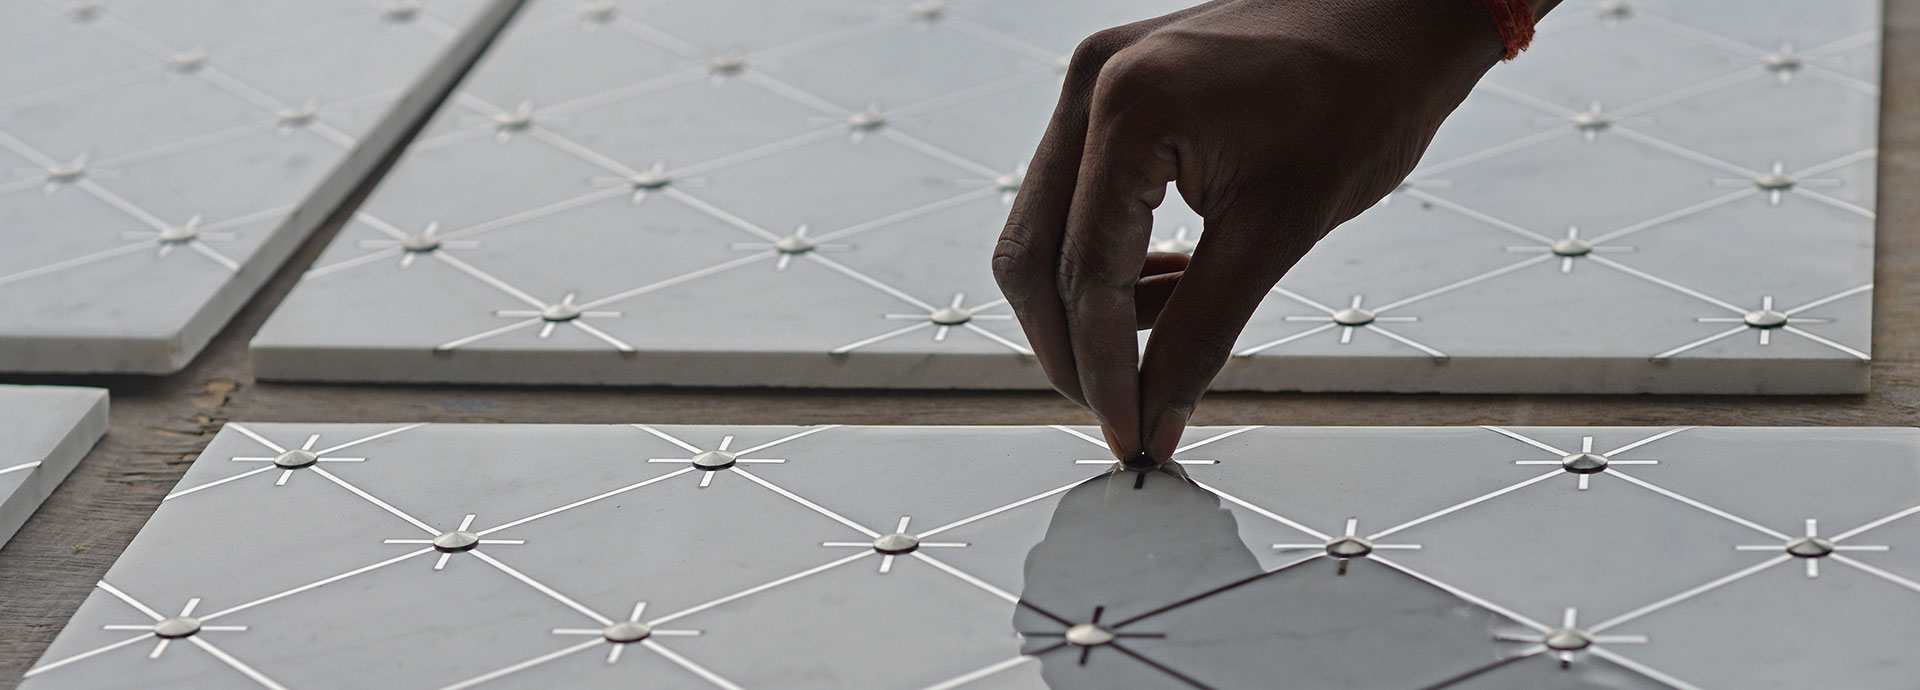 Handcrafted Tile Supplier for Walls